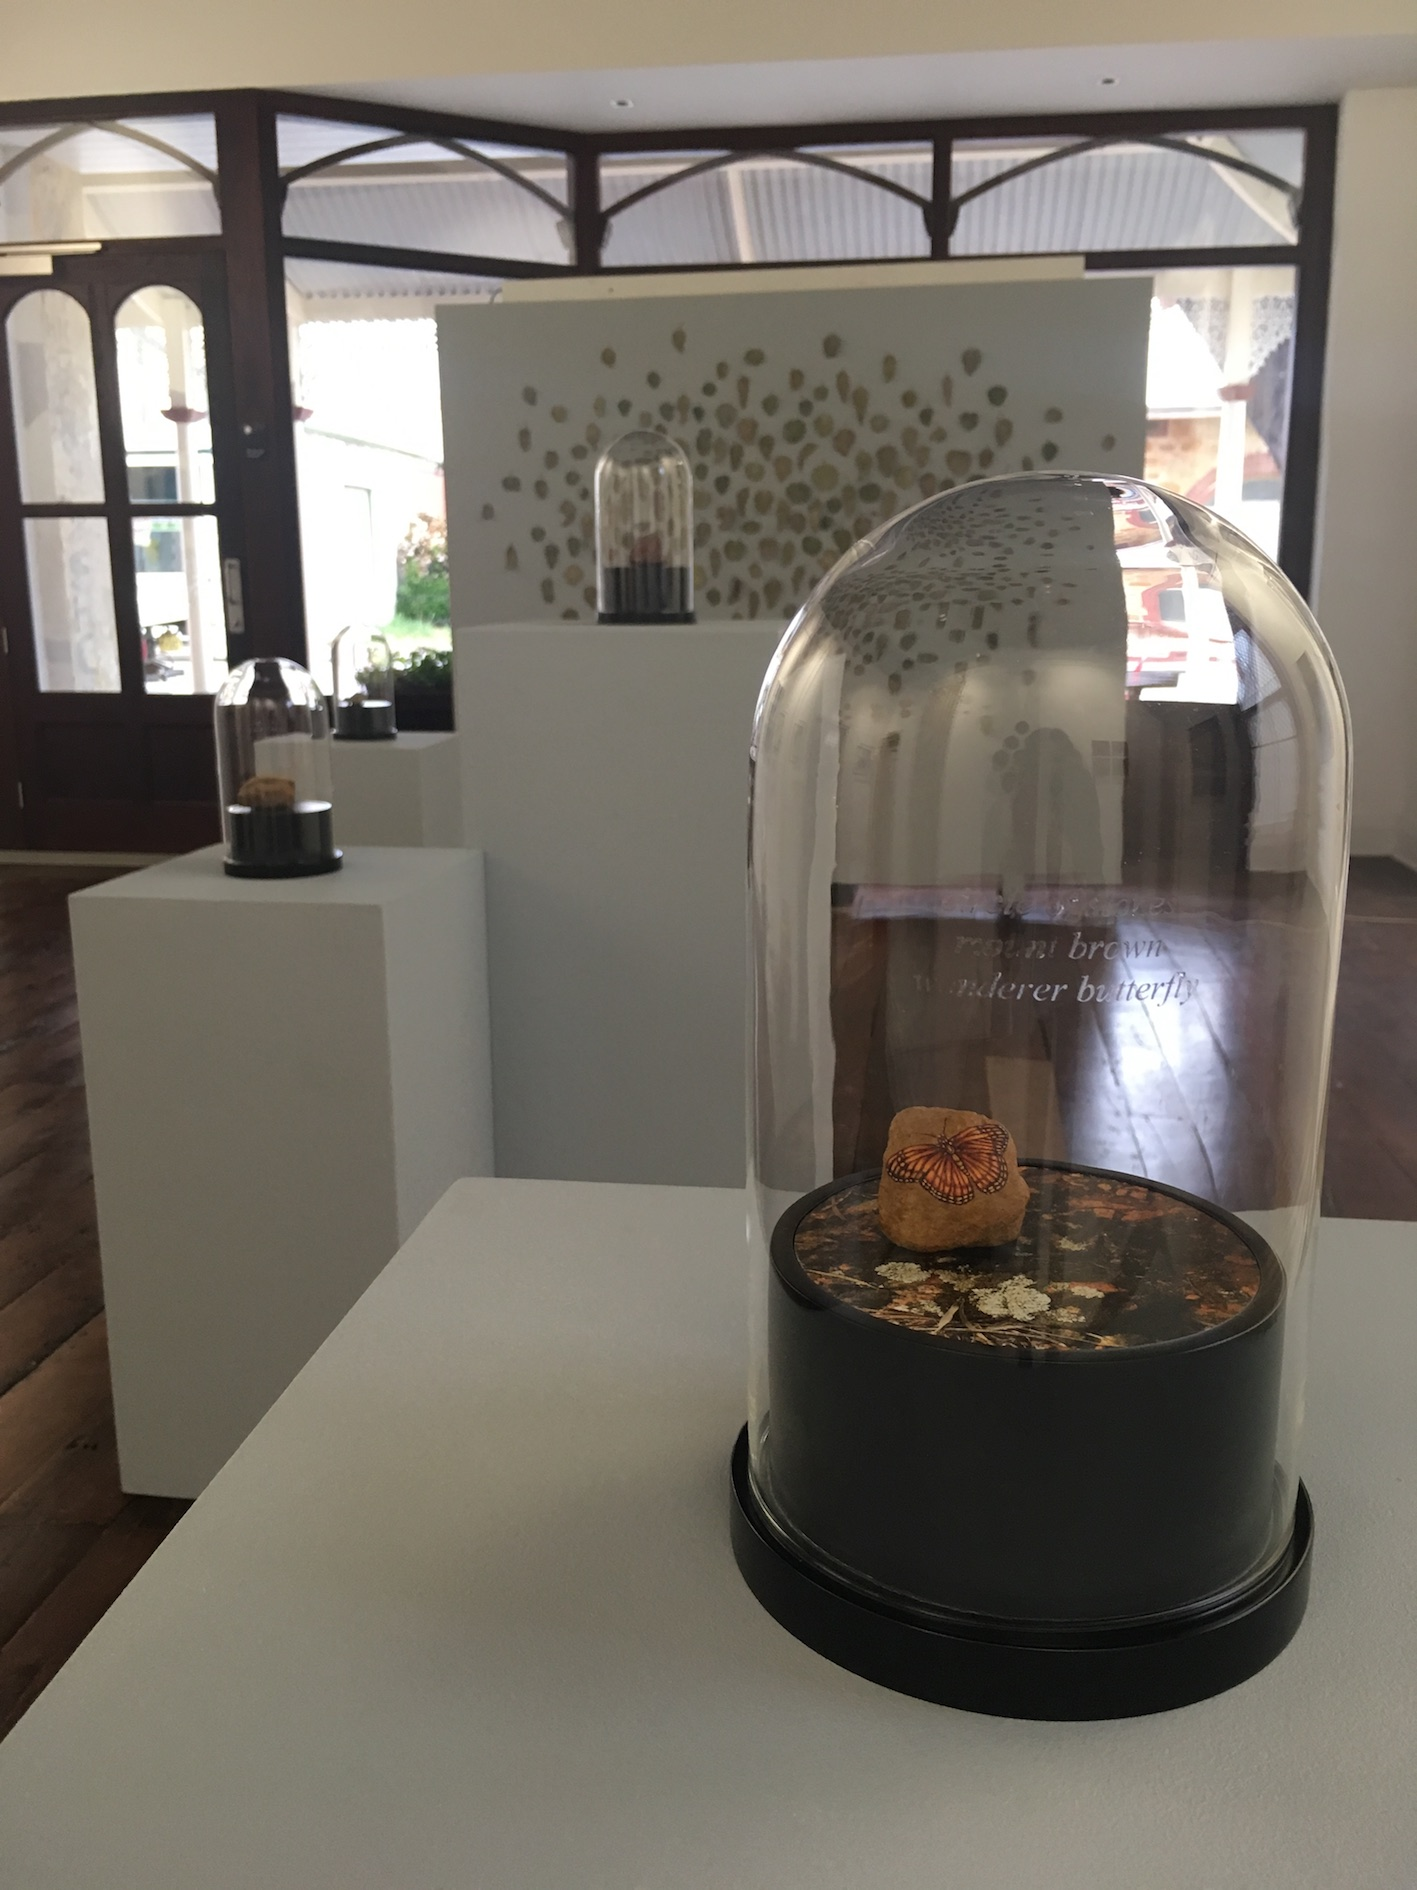 Installation View, Circle of Stones, Gallery 152, York, WA. In the foreground, circle of stones, mount brown, wanderer butterfly.  Mountain rock, gouache, colour photograph on dibond, wooden base and etched glass dome 15d x 27h cm. 2017-18